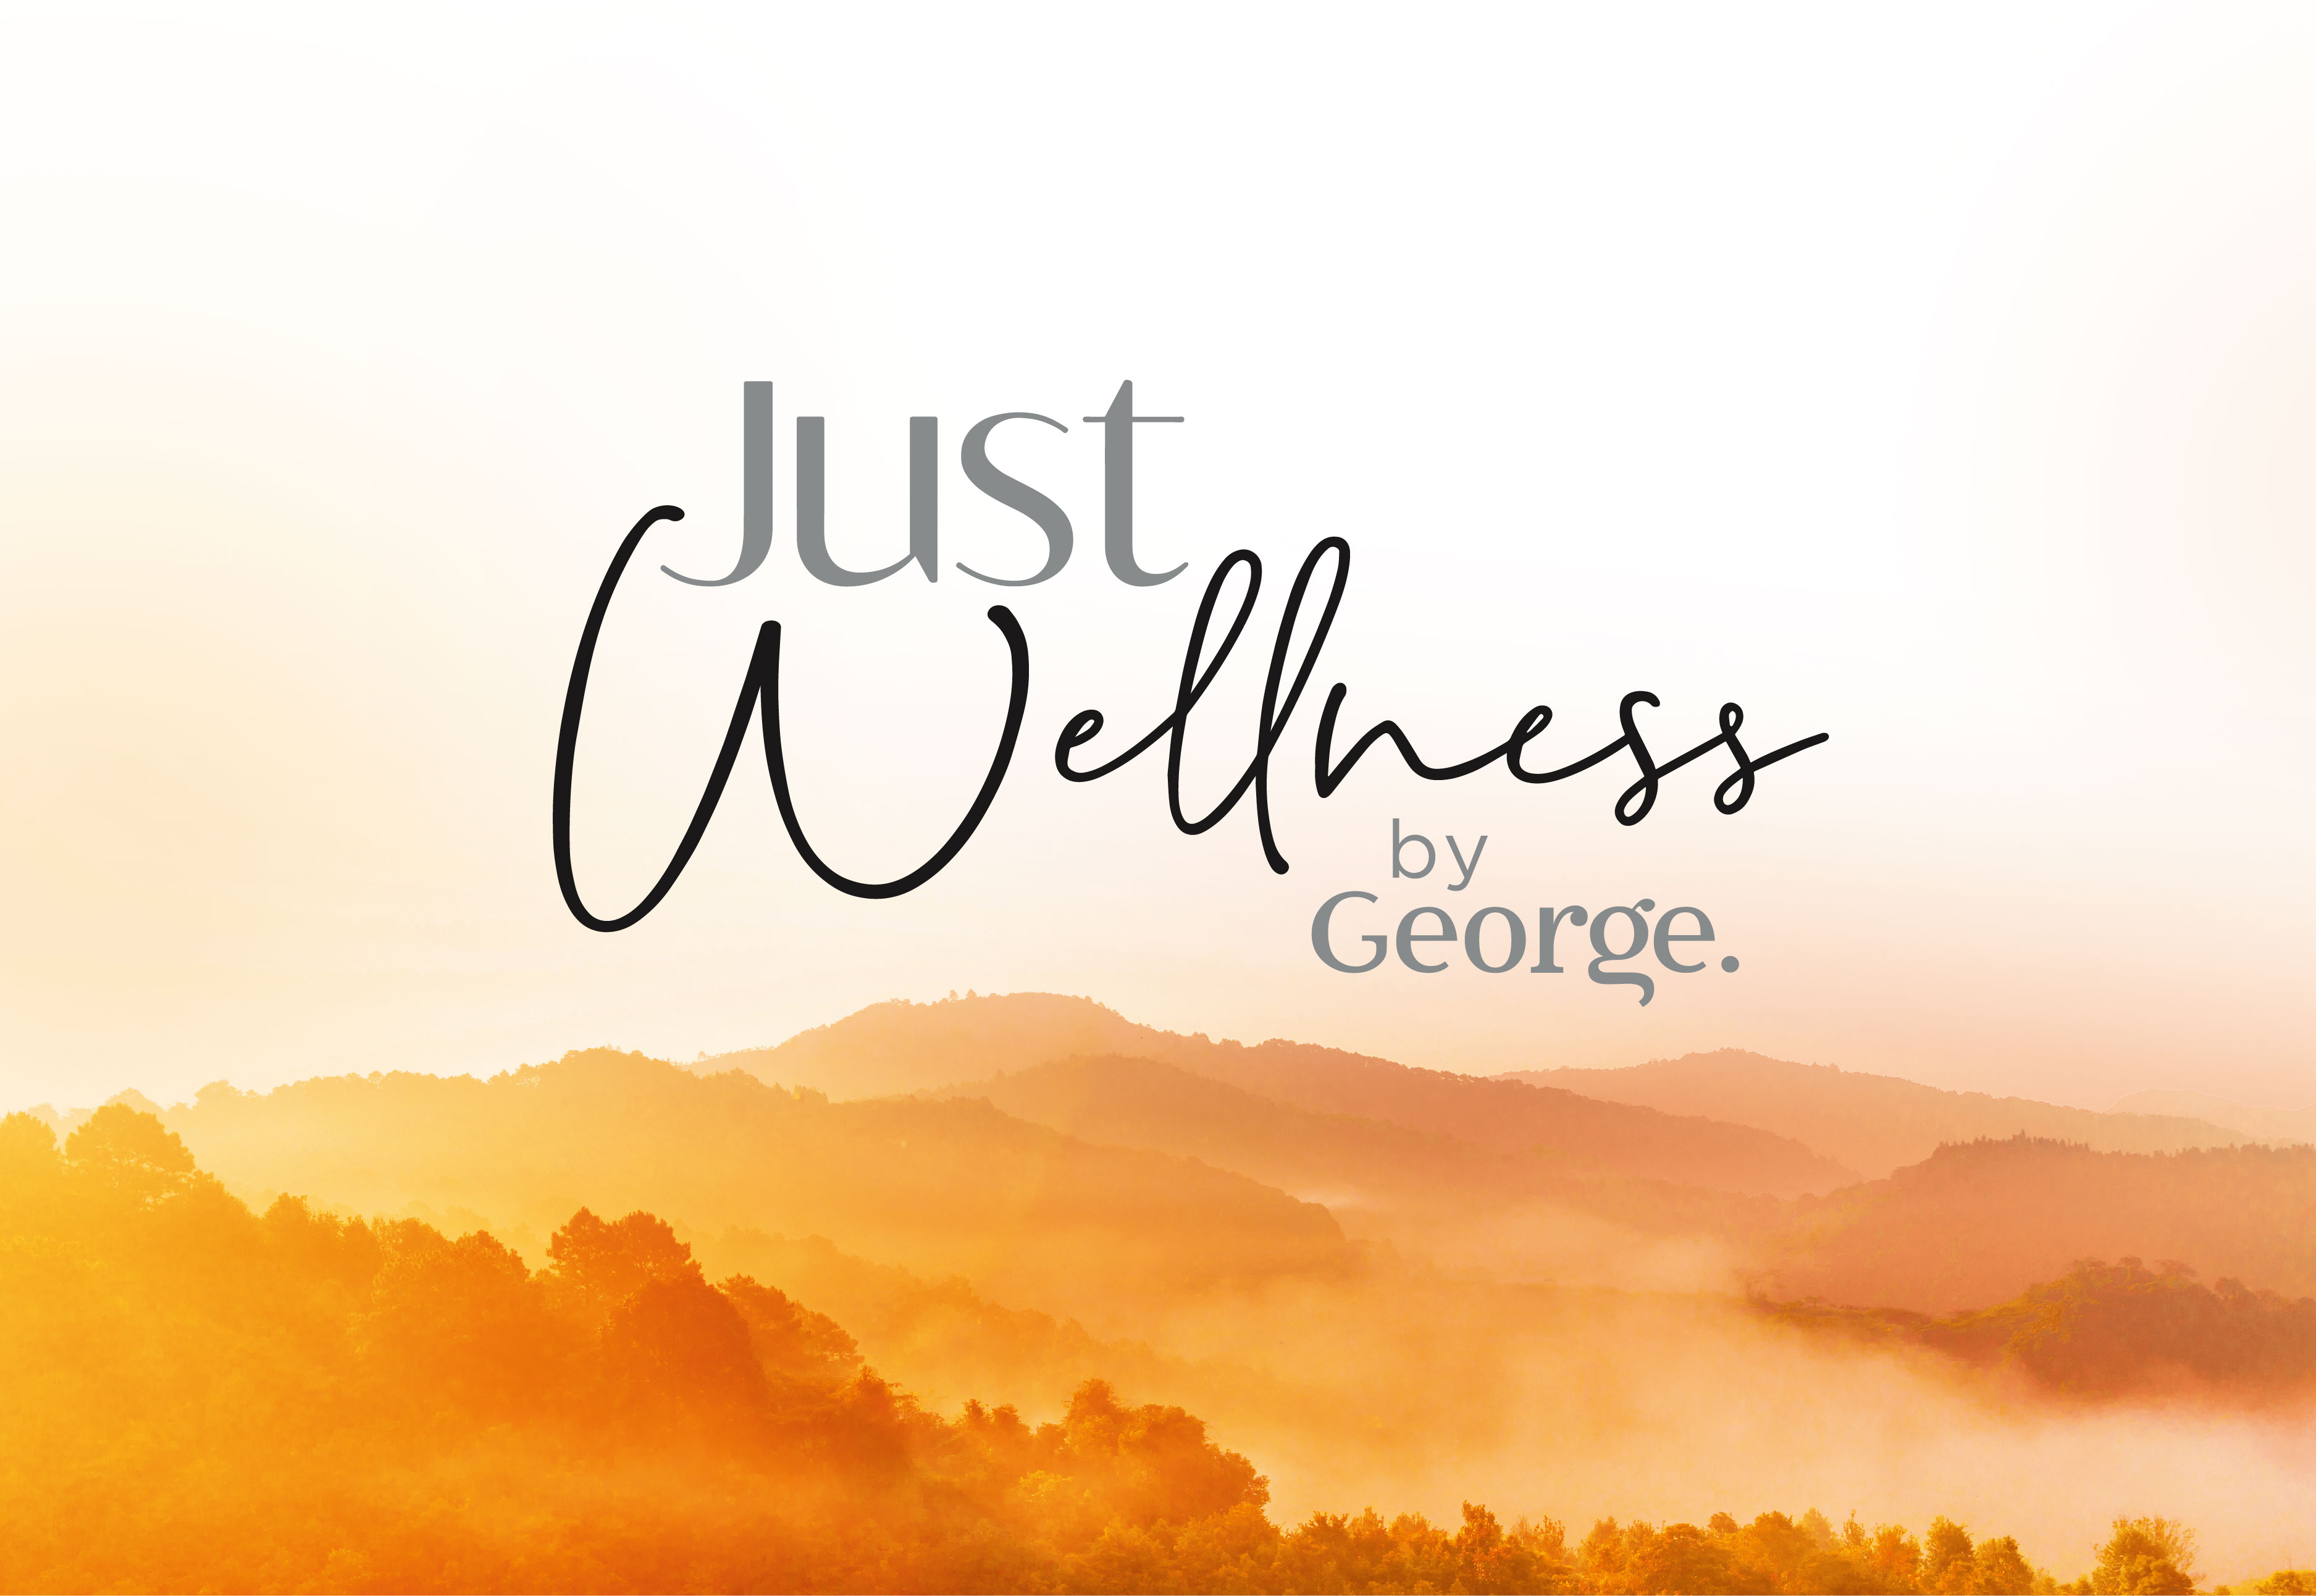 OurCreative Helps You Relax with Just Wellness Brand for George at Asda